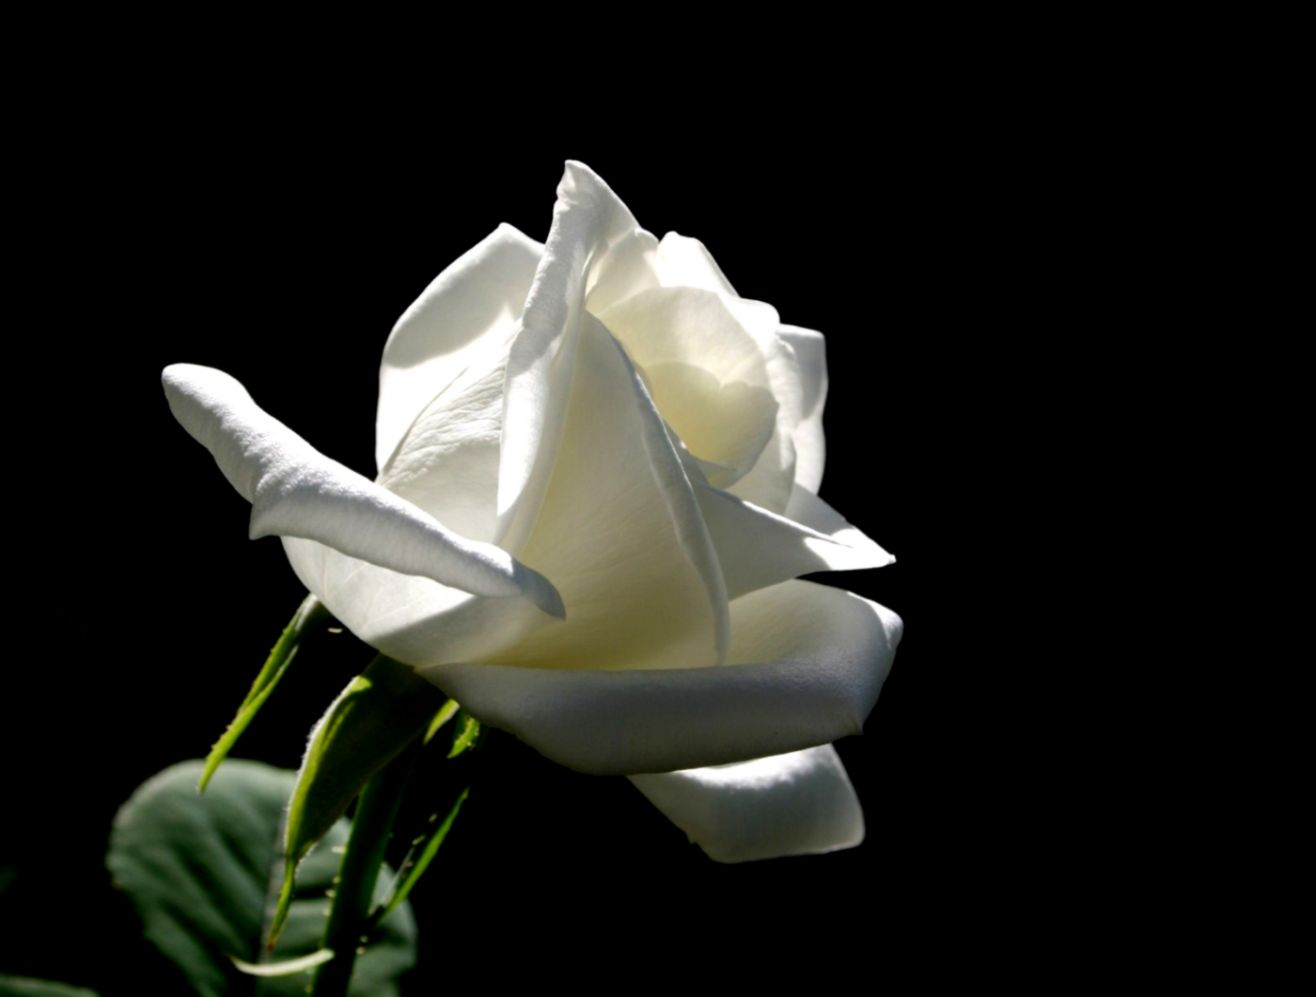 white rose  The White rose on a black background black flowers